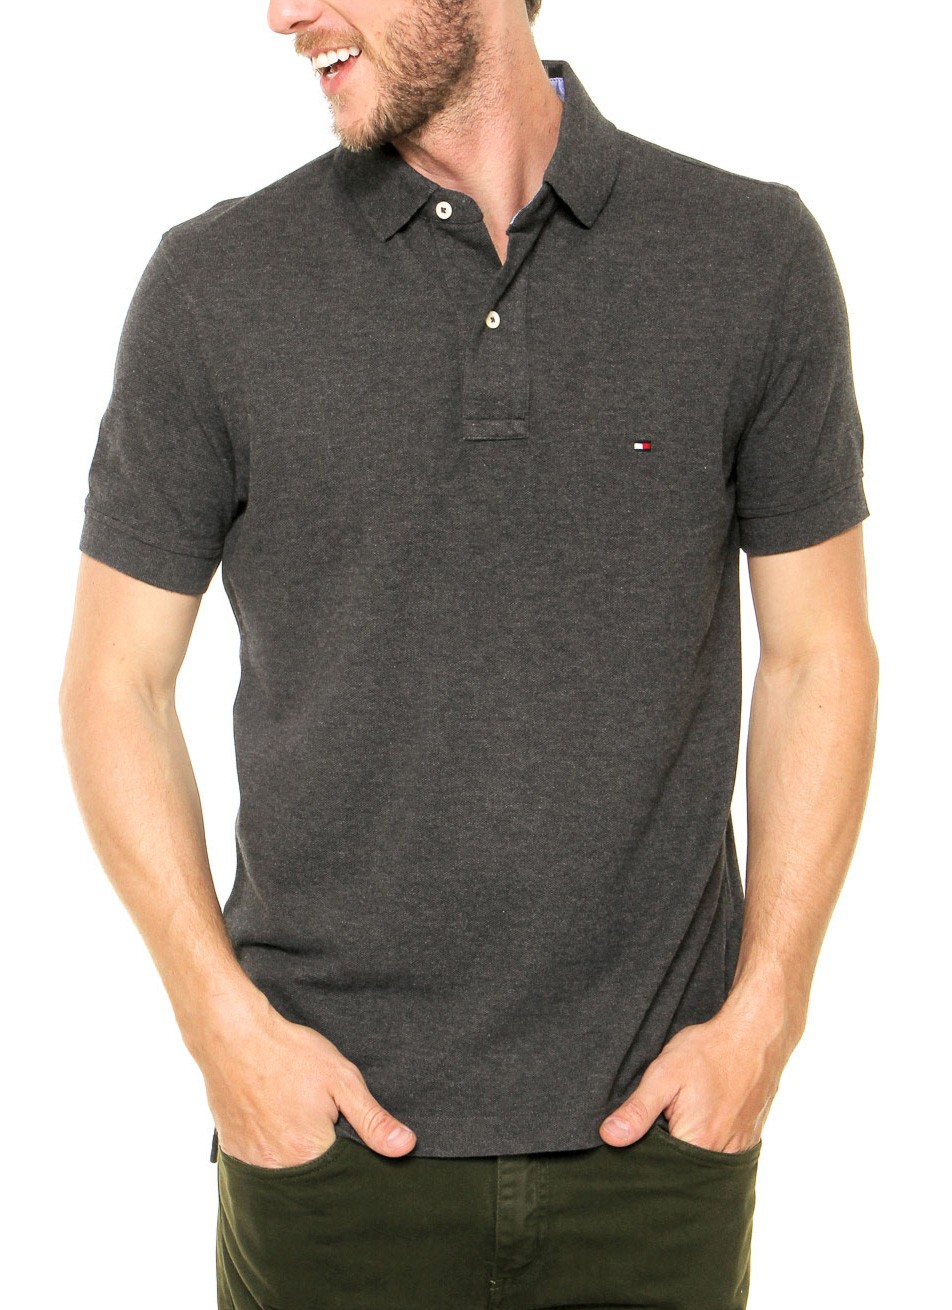 Polo Tommy Hilfiger Masculina Regular Fit Piquet Cinza Escuro